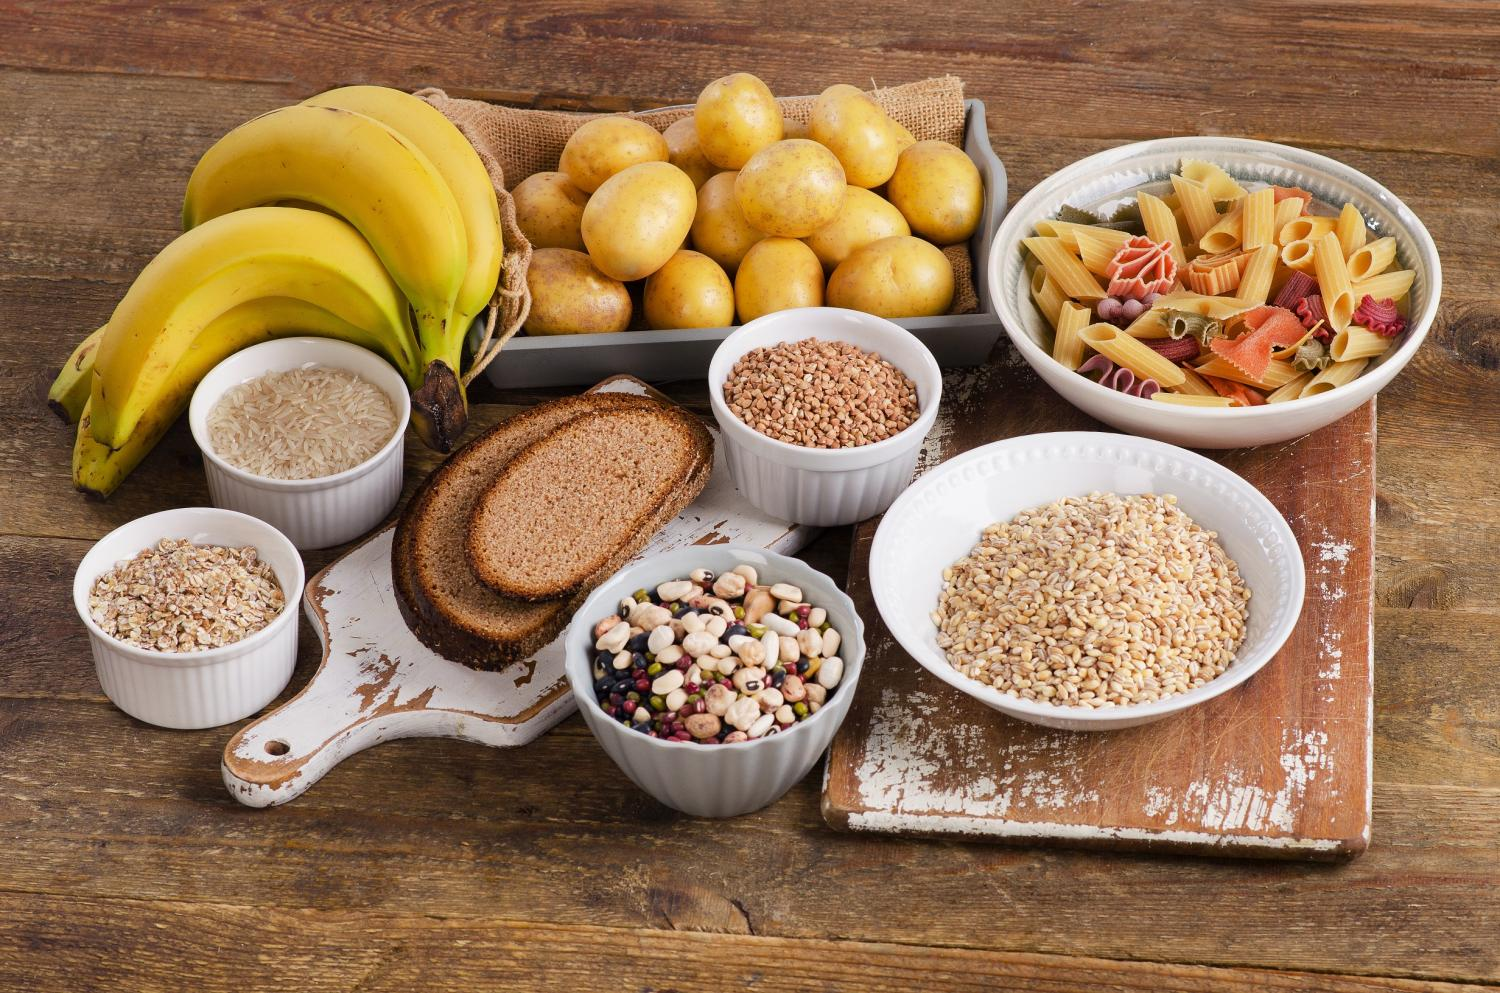 What foods contain resistant starch